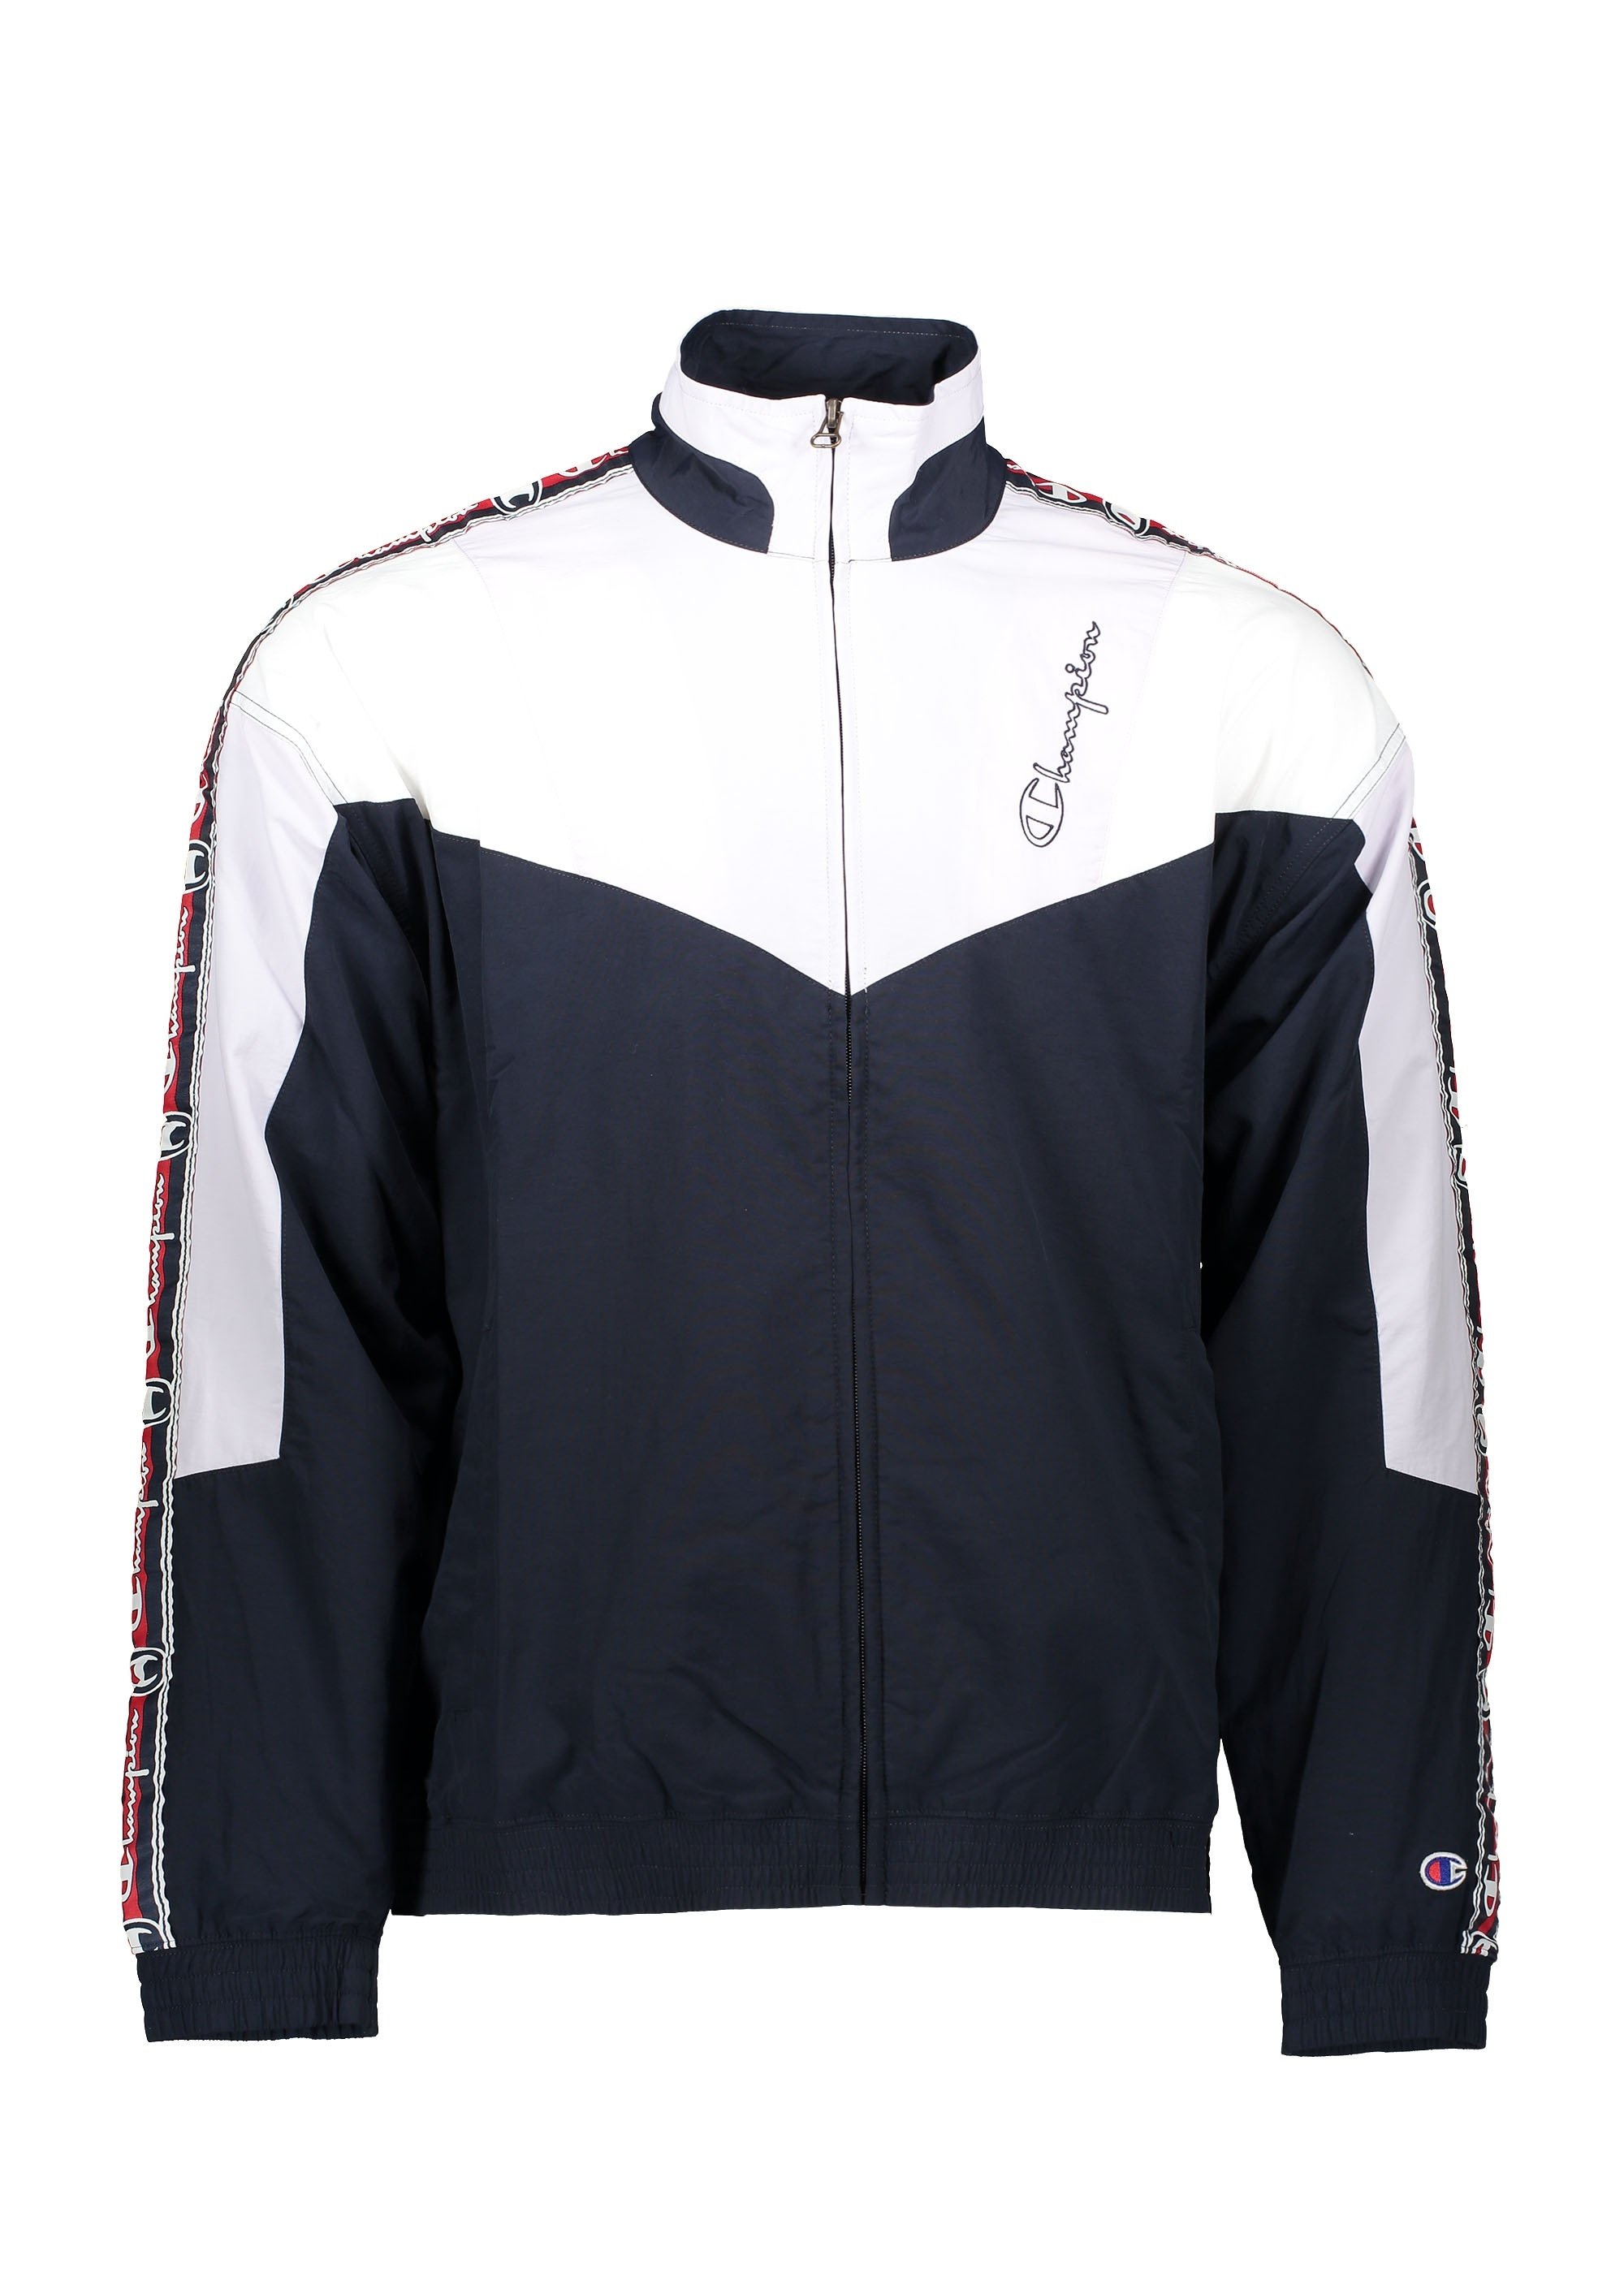 b92f3809a4ed8 Champion Full Zip Top - Navy   Pink - Triads Mens from Triads UK